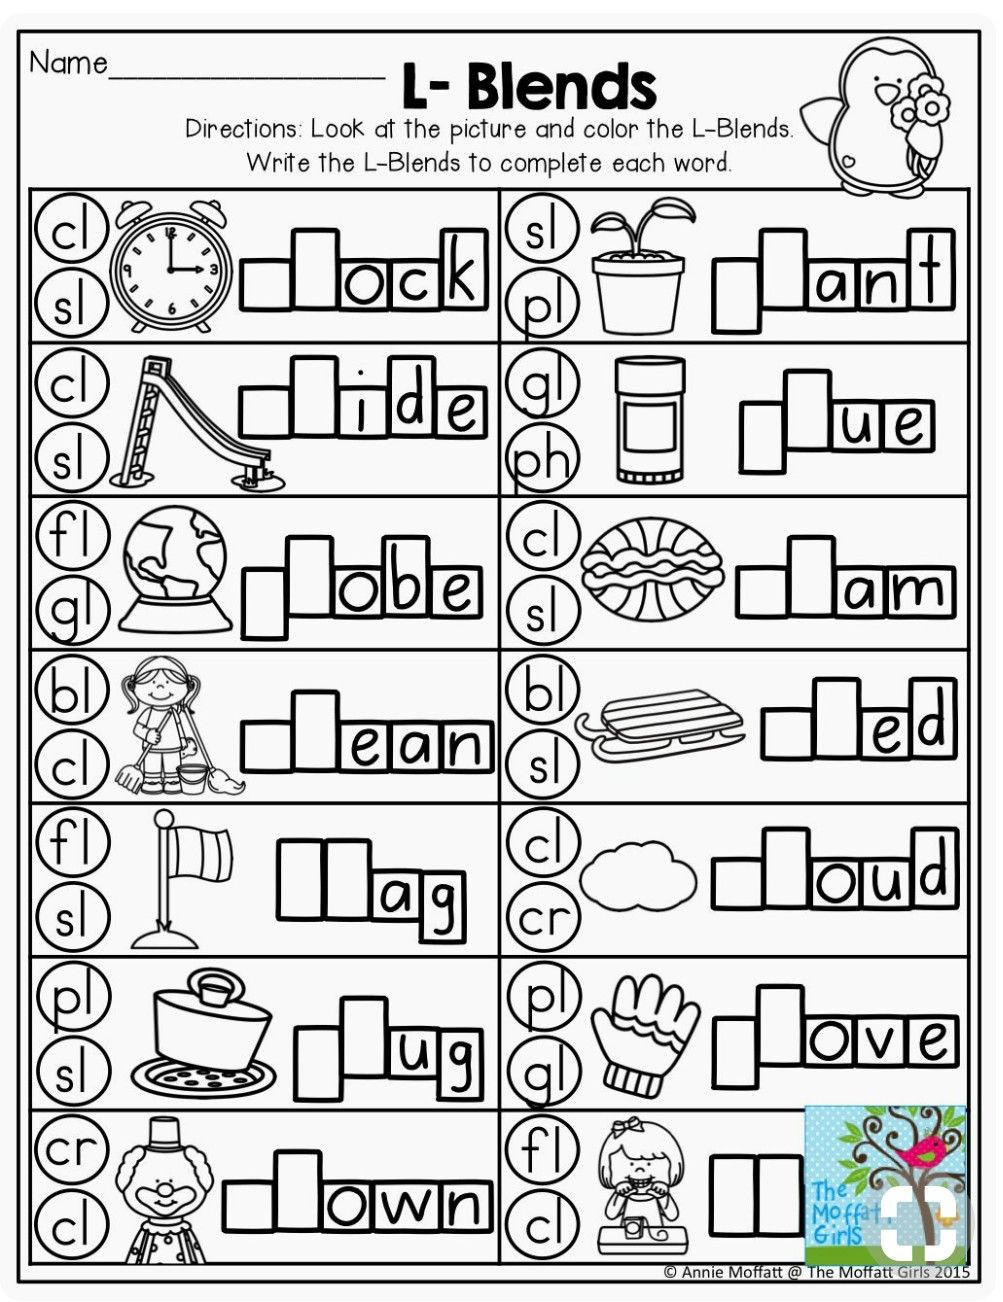 Blending Worksheets 1st Grade Worksheet Awesome 1st Grade Phonicsrksheets Image Ideas